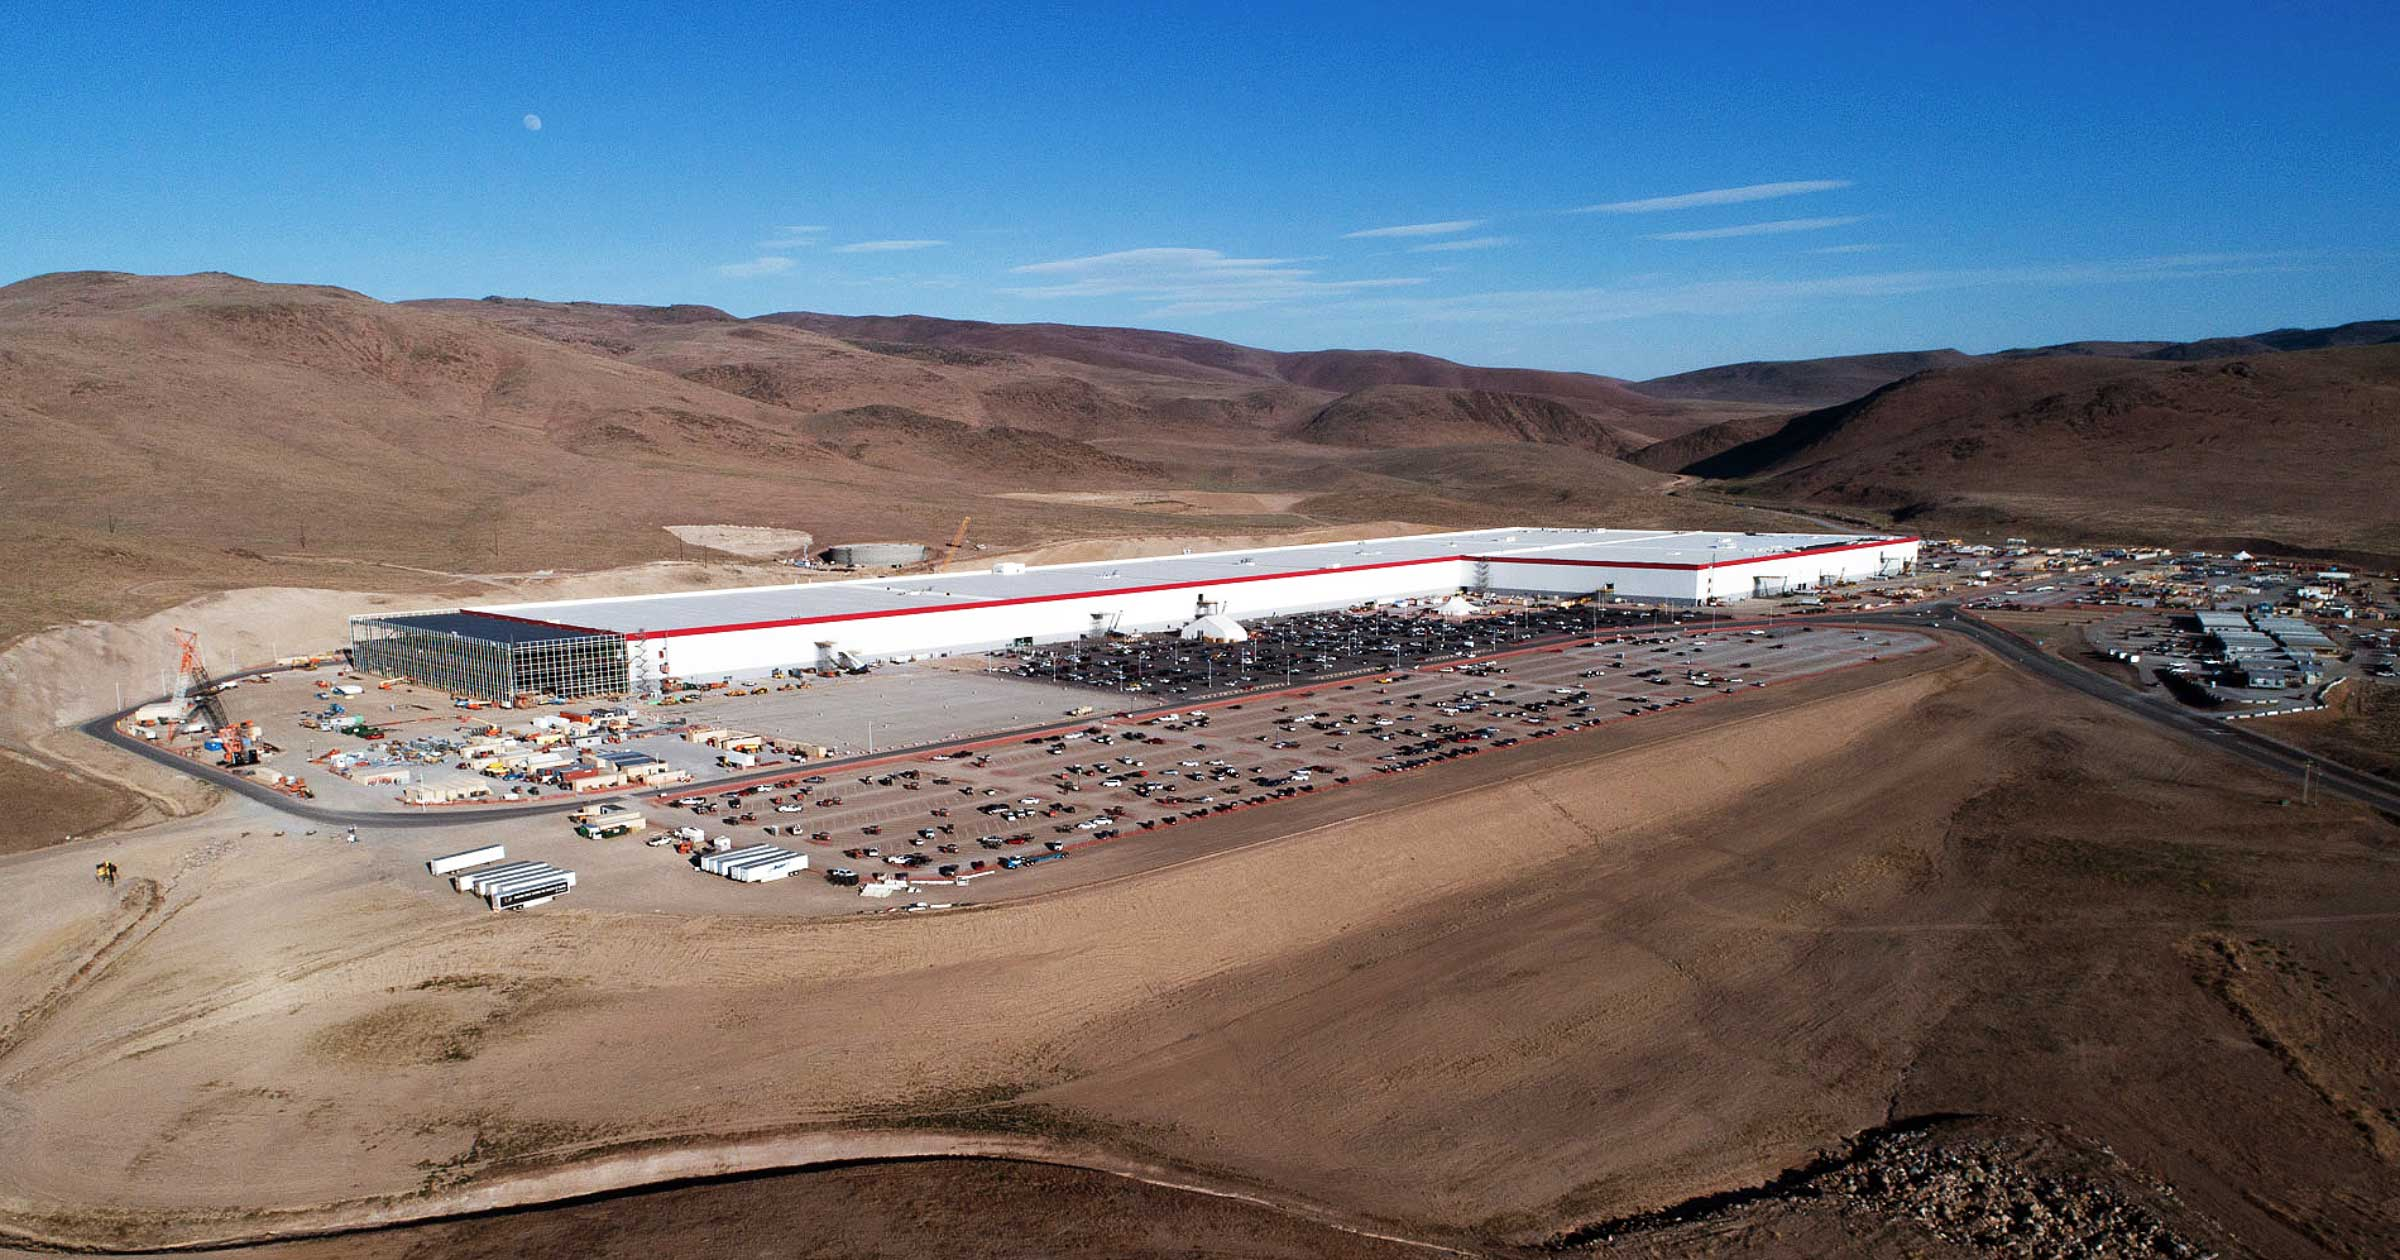 Renault-Nissan is the world's leading manufacturer of EVs, followed by Tesla, whose Nevada Tesla's Gigfactory is pictured above. Michigan's Big Three Ford, General Motors and Chrysler/Fiat lag behind. (Sam McGuire)